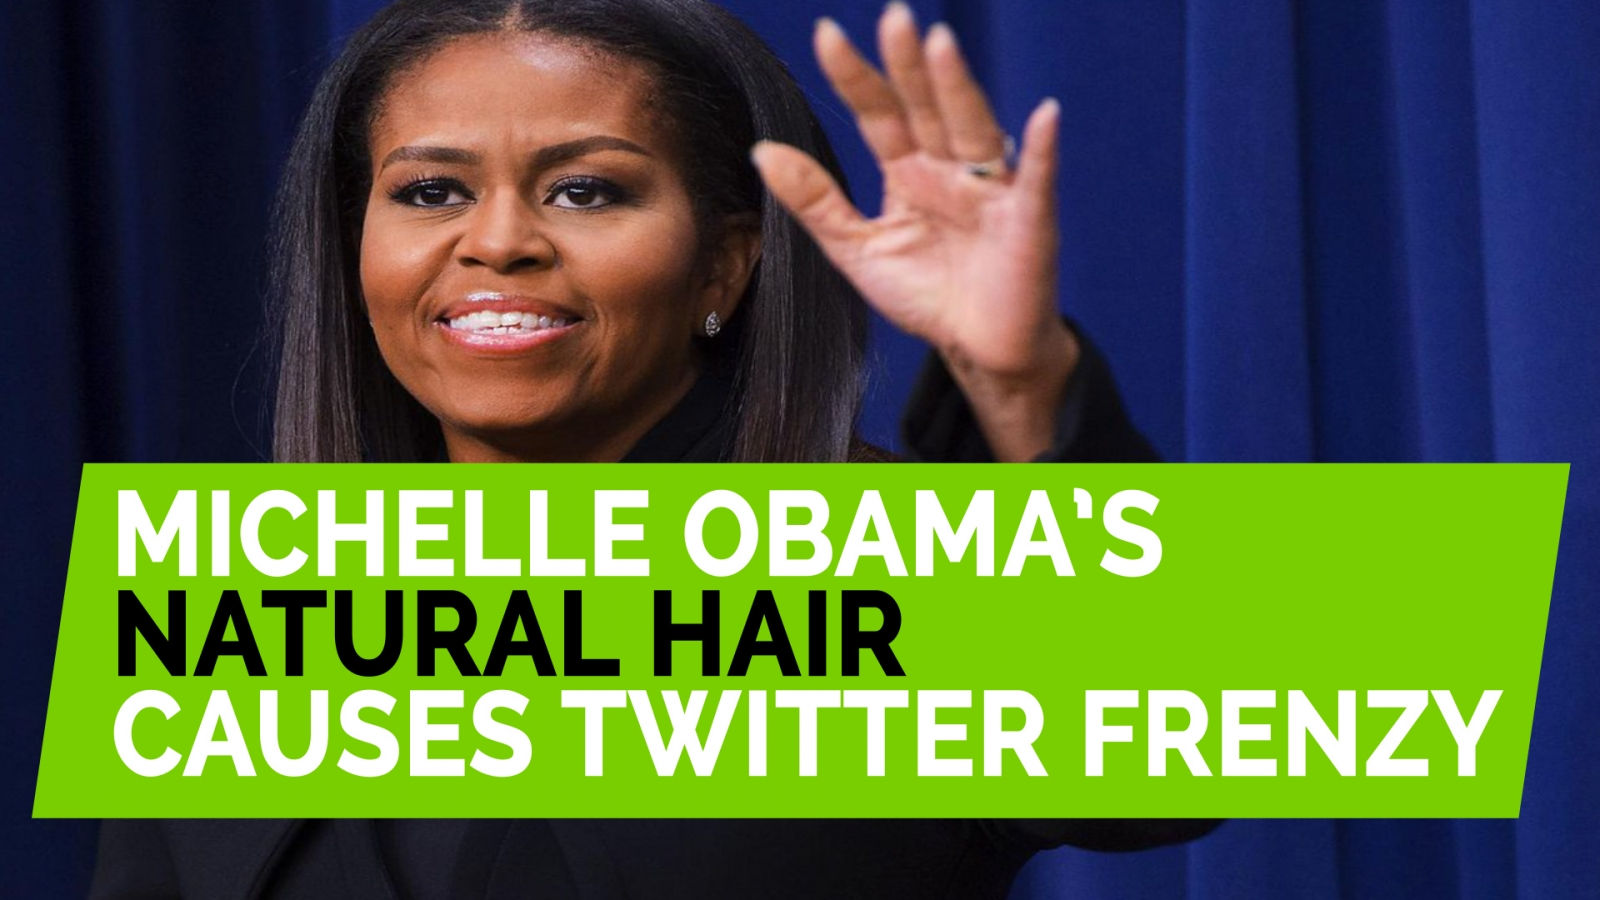 michelle-obamas-natural-hair-causes-twitter-frenzy